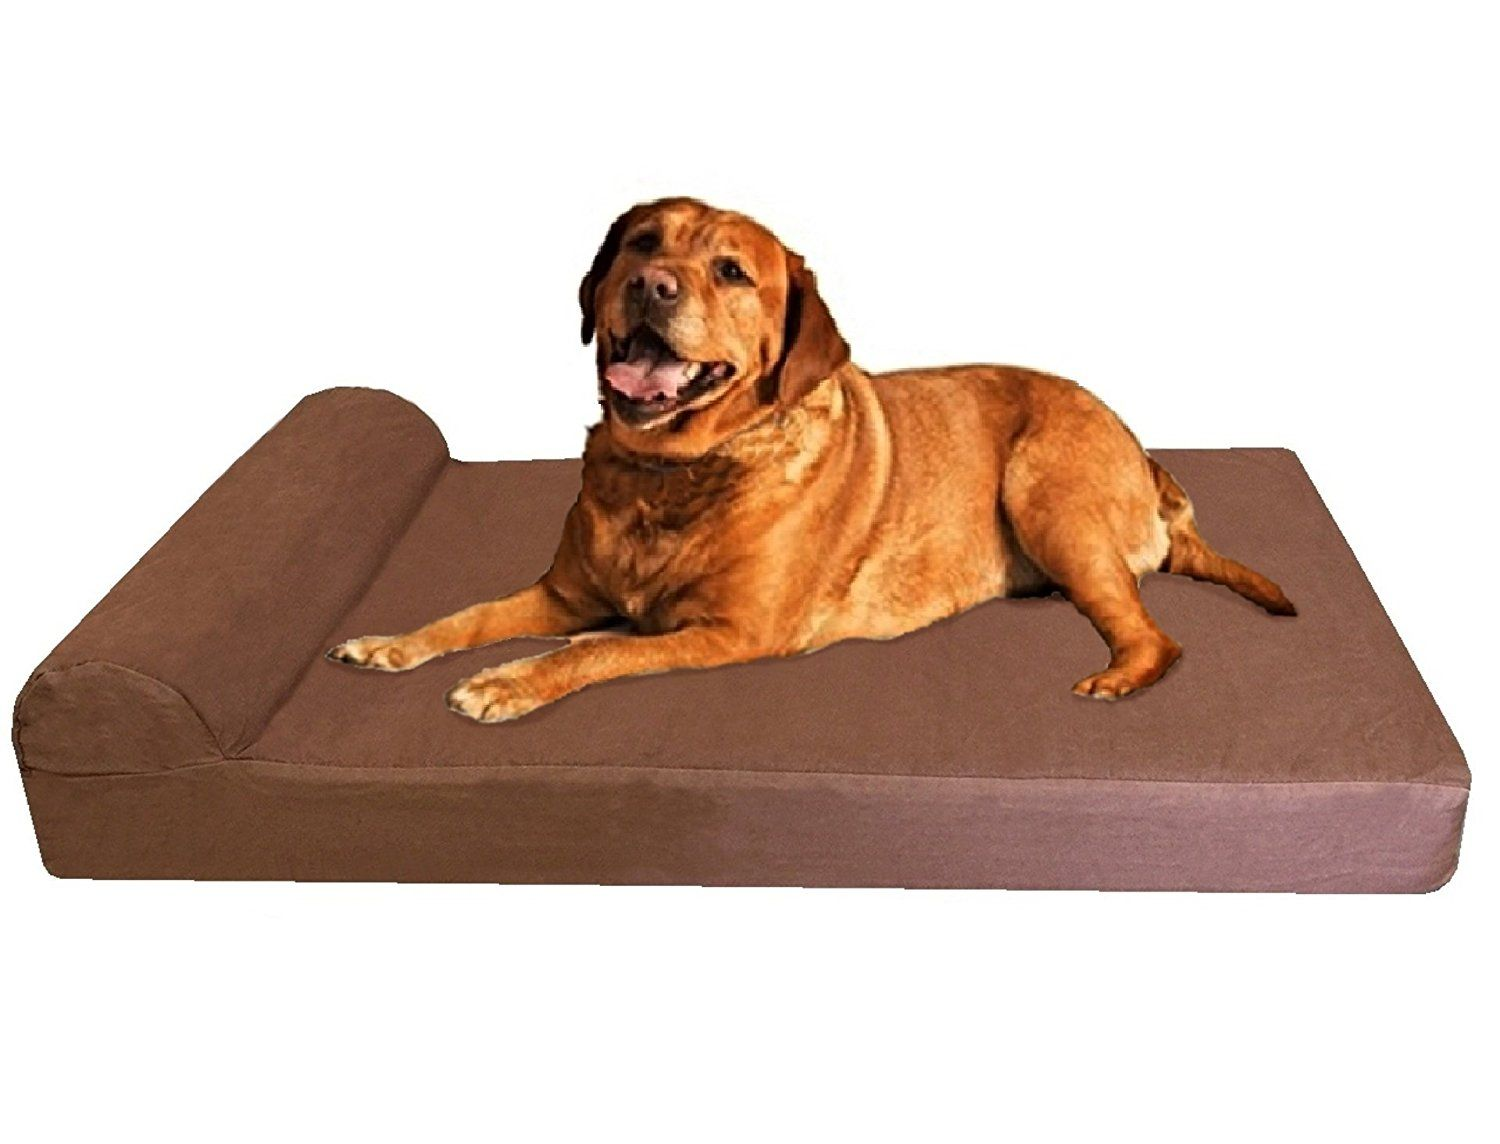 Dogbed4less Premium Extra Large HeadRest Pillow Orthopedic